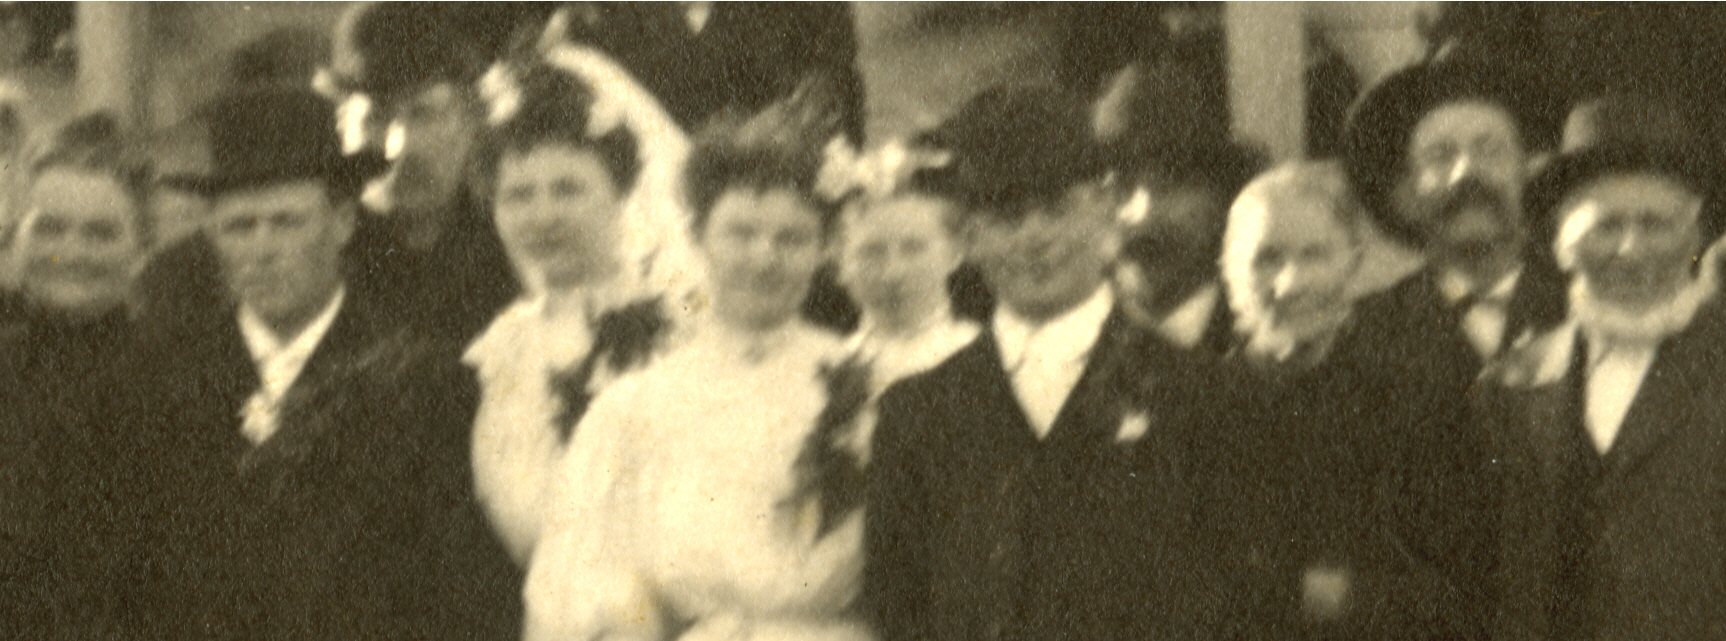 "A close up of my grandparents' wedding celebration, April 9, 1907.  Far left is Mary Burger Beckman, my great-grandmother.  The front row (l to r) is then my Grandfather, Anton Boeckenstedt, my grandmother, Agnes Beckman Boeckenstedt, my grandmother's sister Maime Beckman, unidentified girl, John ""Pinoak"" Boeckenstedt(Anton's brother),my great great grandmother Anna Marie Wiechmann Boeckenstedt , unidentified man, and my great grandfather Clemens Boeckenstedt, b. 1934 in Steinfeld, Germany."